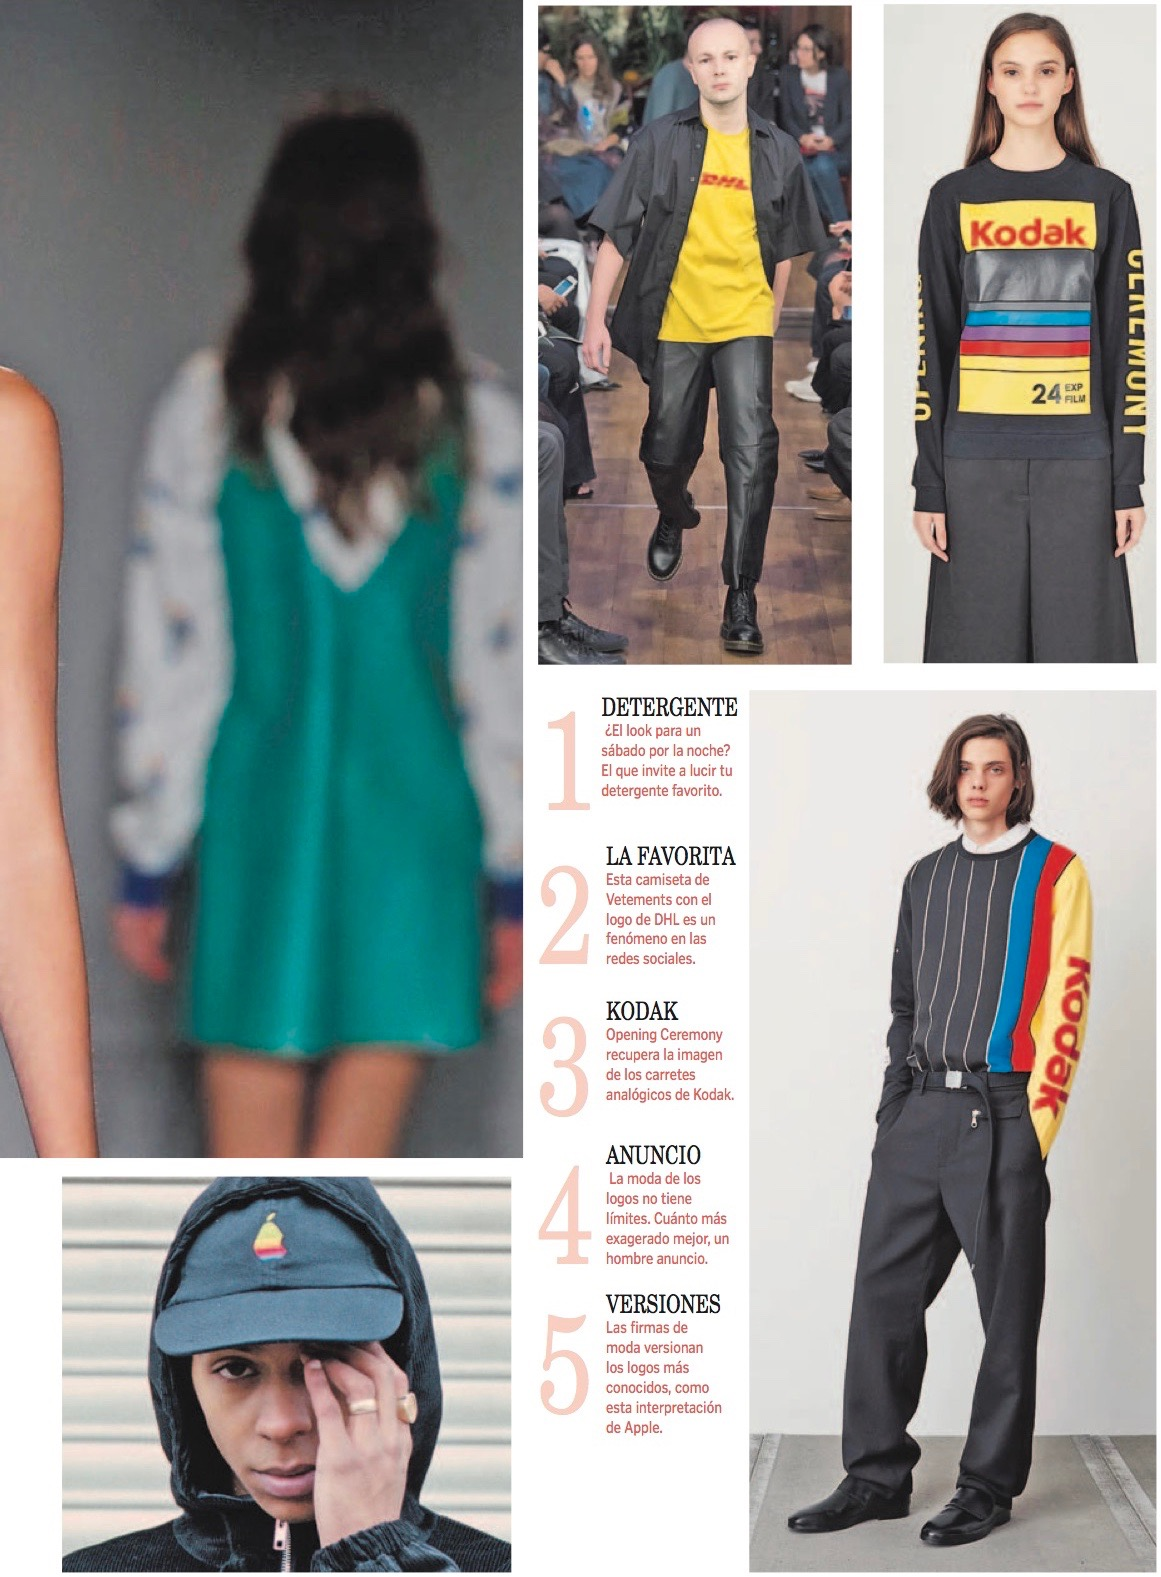 marcas_vetements_DHL_tendencias_2016_revista_YES_02 (1)